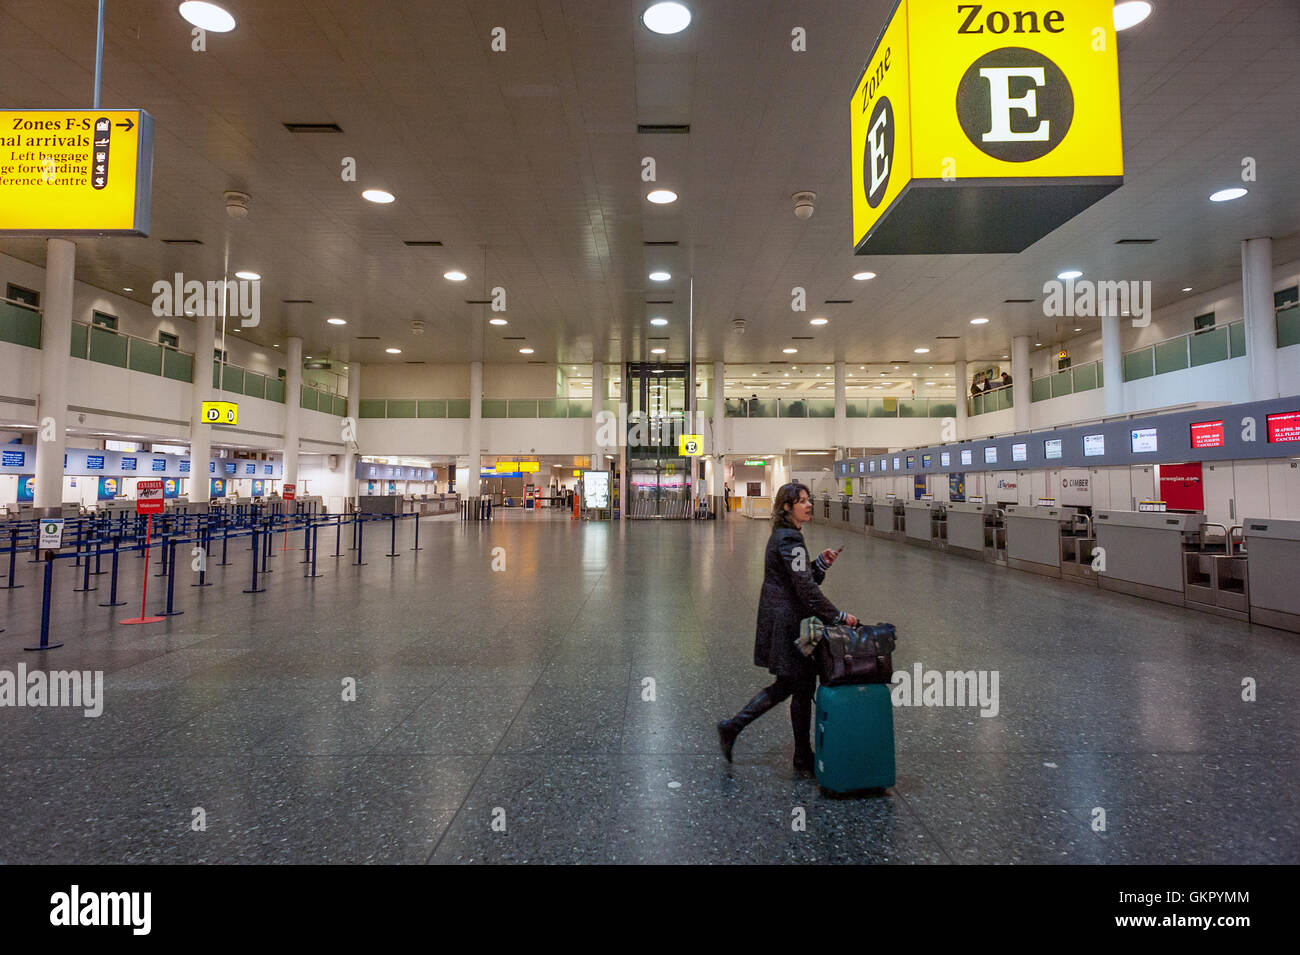 A relatively empty check-in area at South Terminal, Gatwick